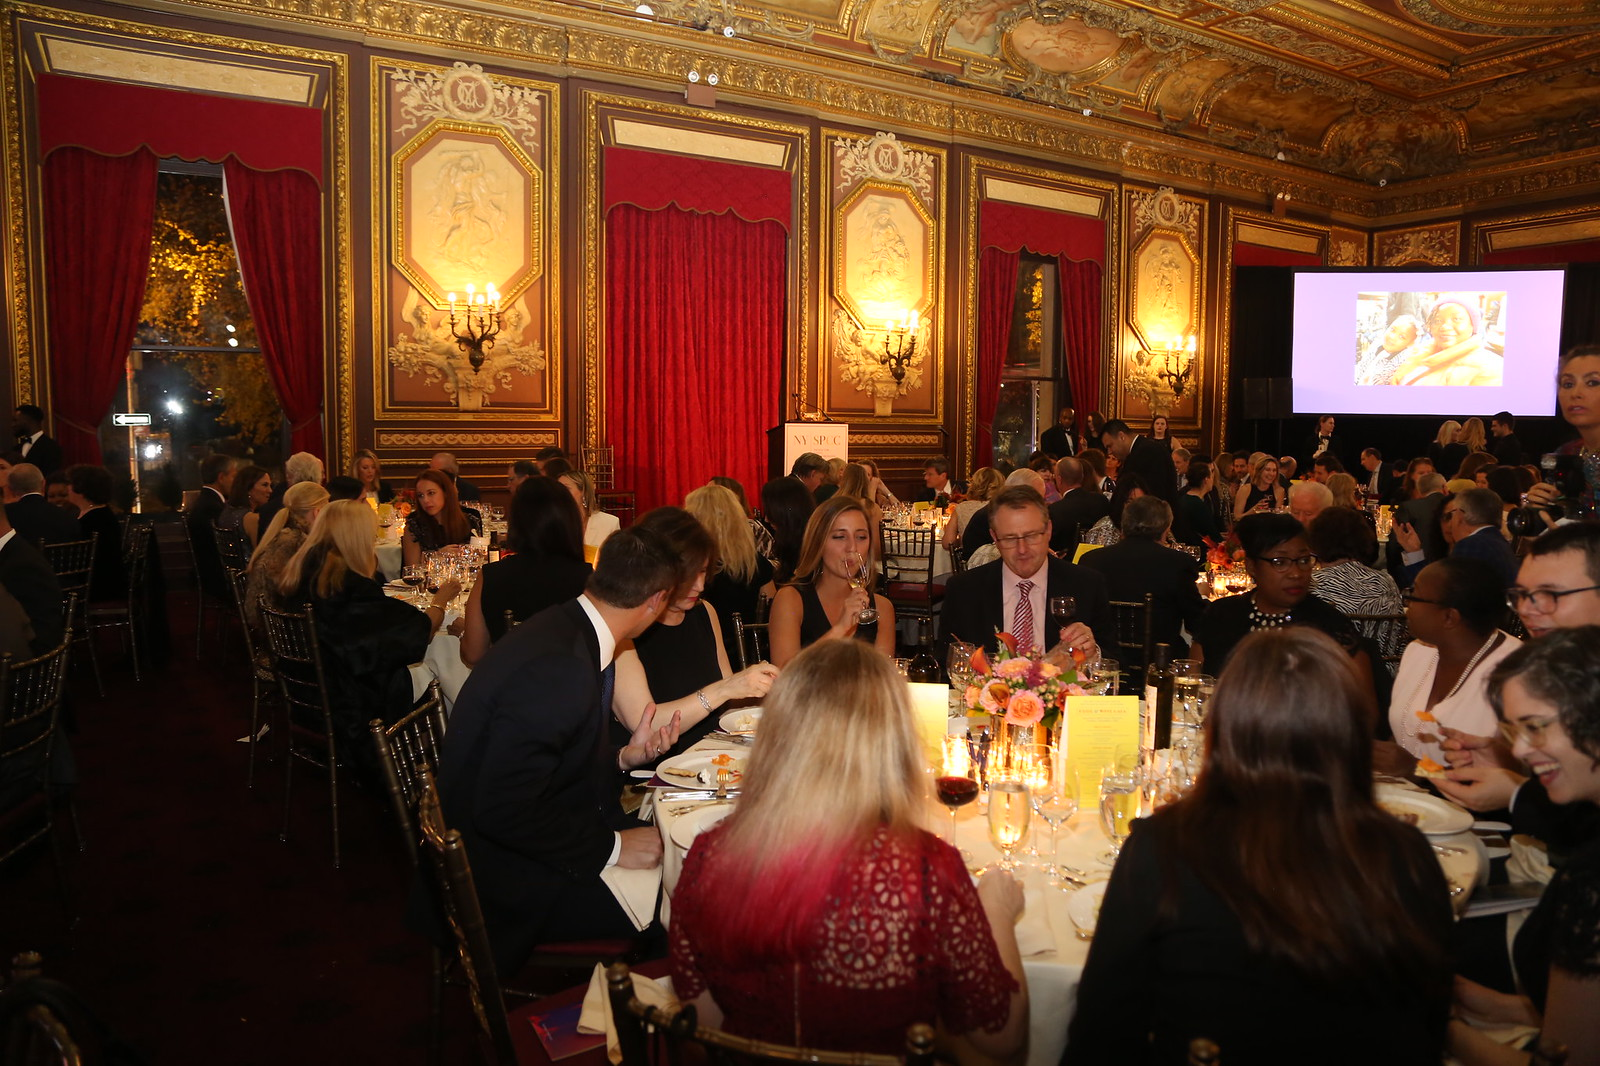 The New York Society For The Prevention Of Cruelty To Children's 2018 Food & Wine Gala